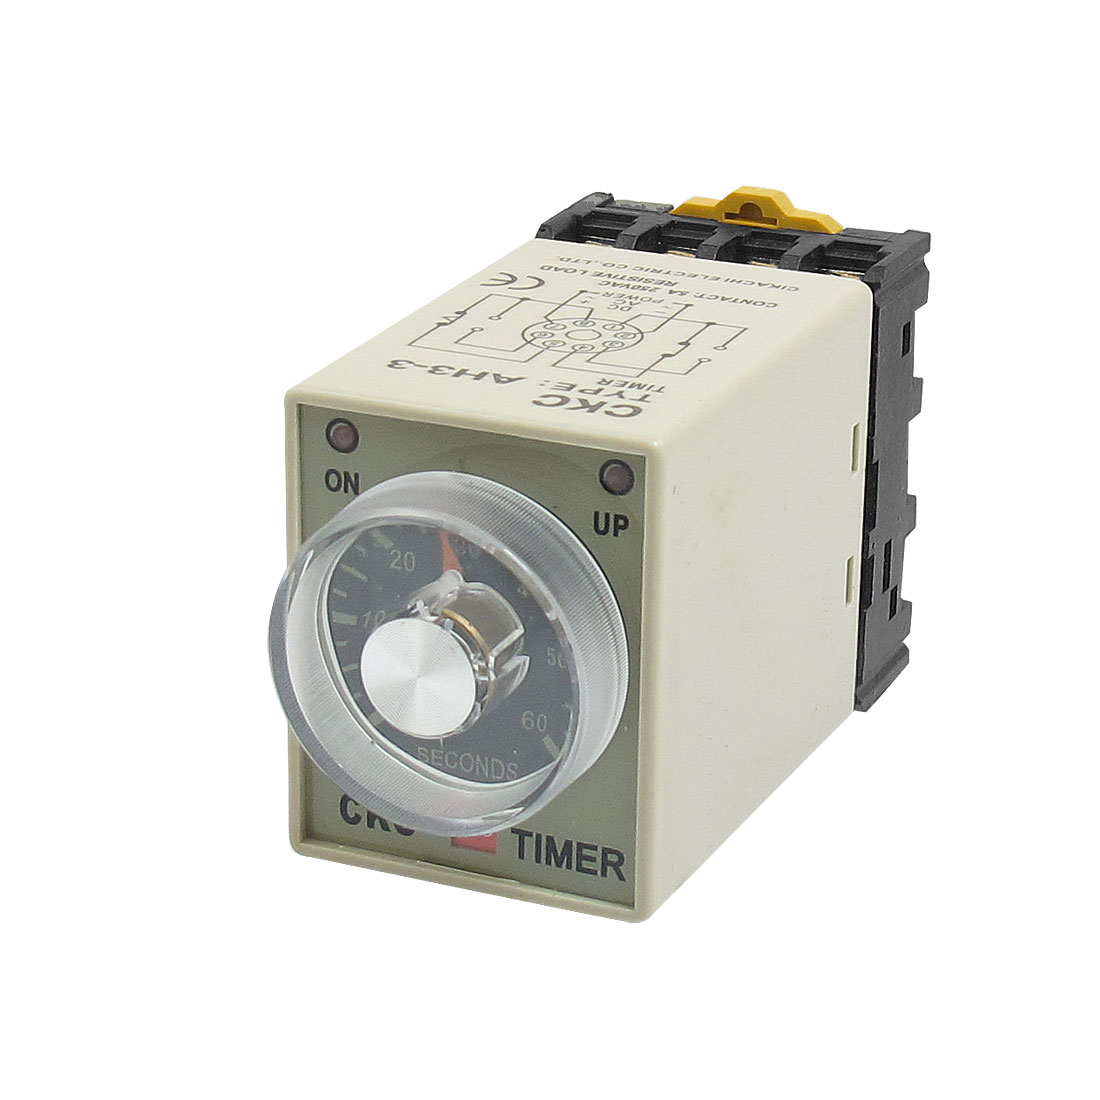 AH3-3 AC 220V 0-60s 60 Second 8P Terminals Delay Timer Time Relay w Base